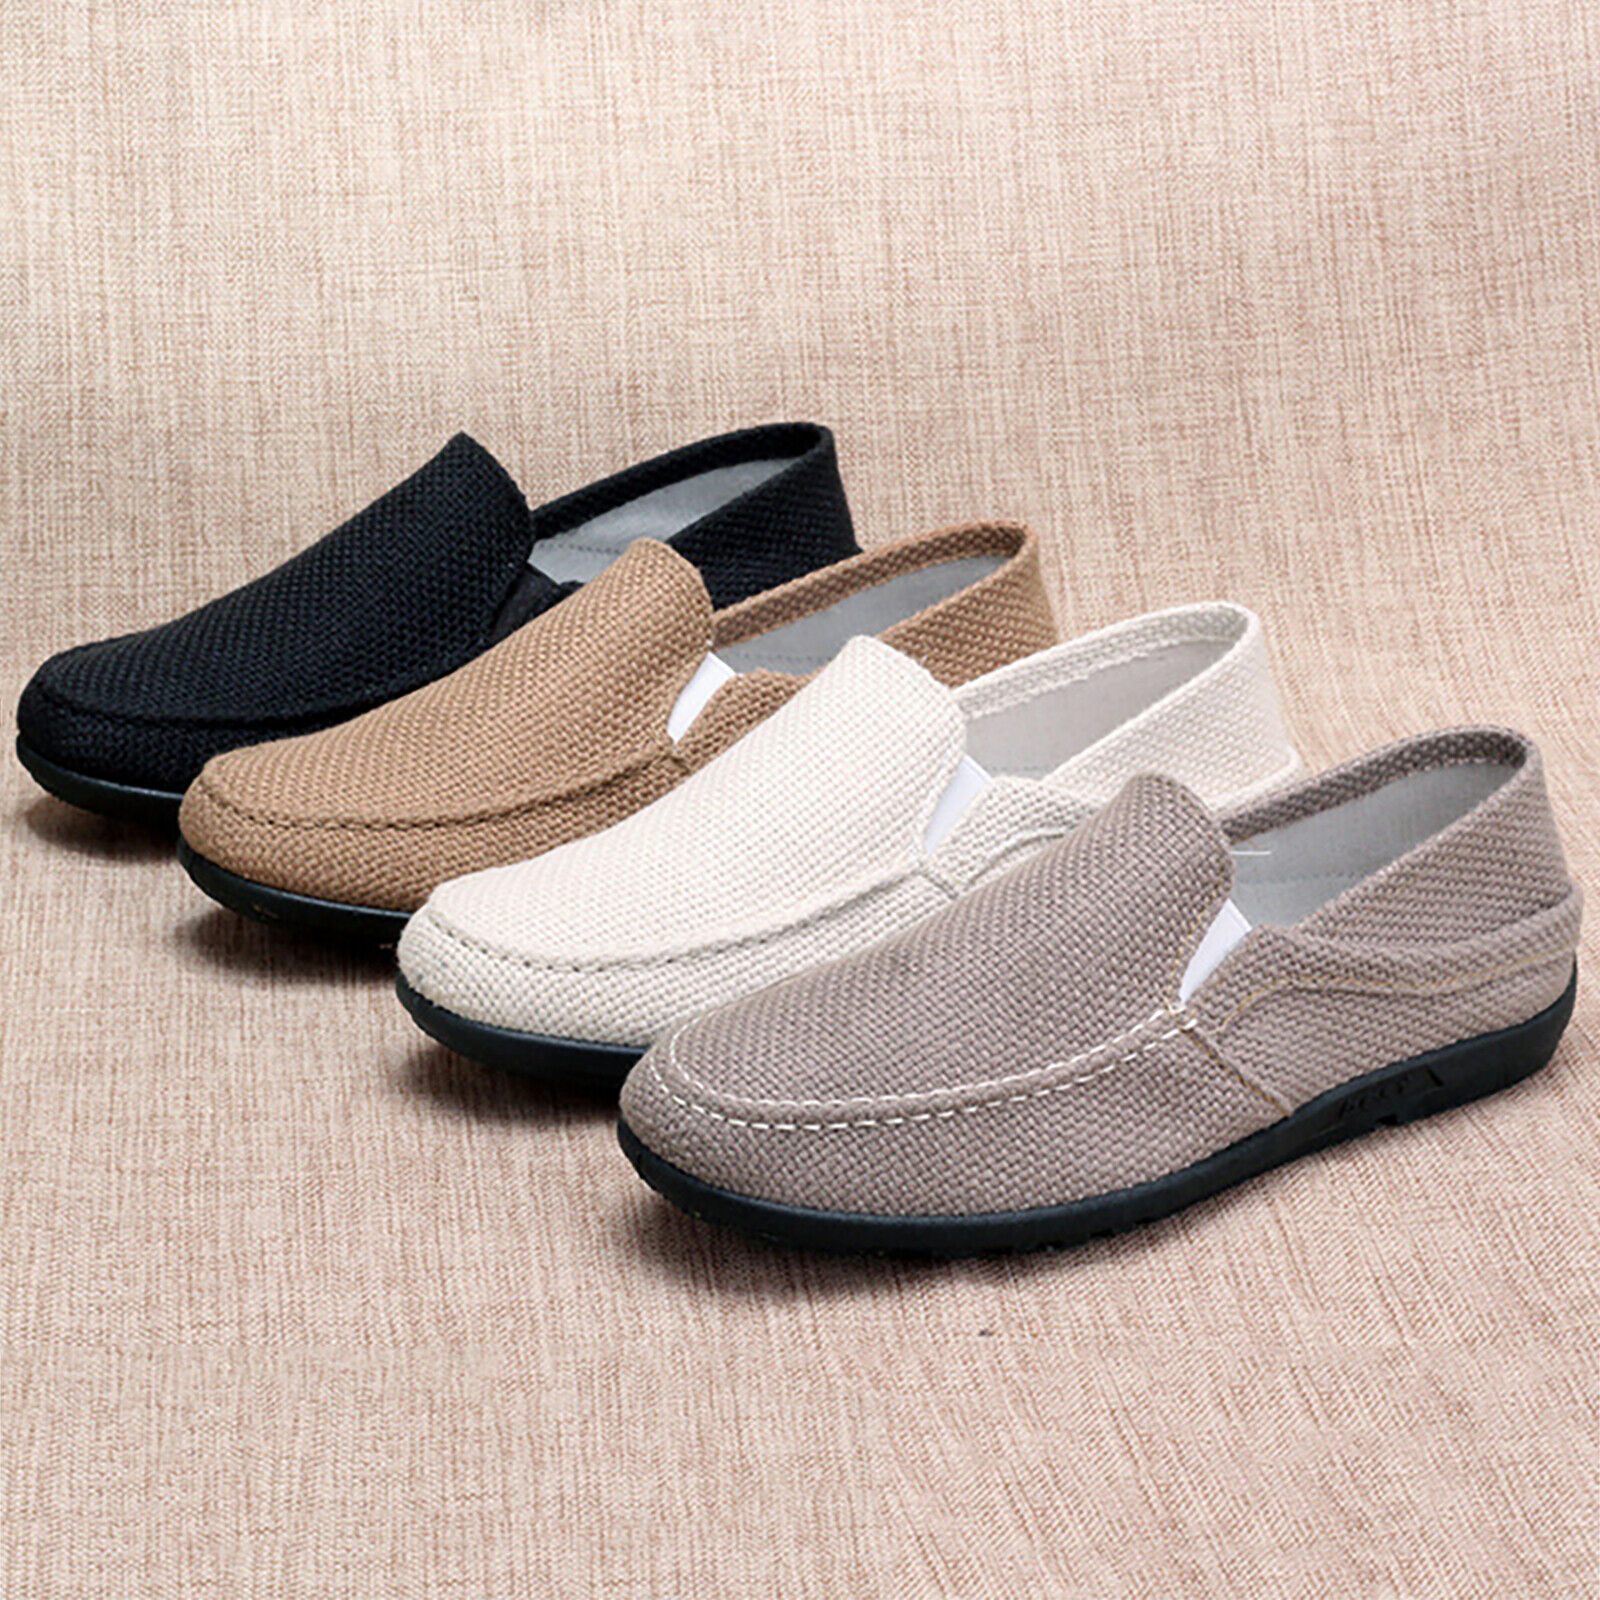 Men's Casual Driving Shoes Slip On Canvas Loafers Moccasins Smart Flats Shoes US 1